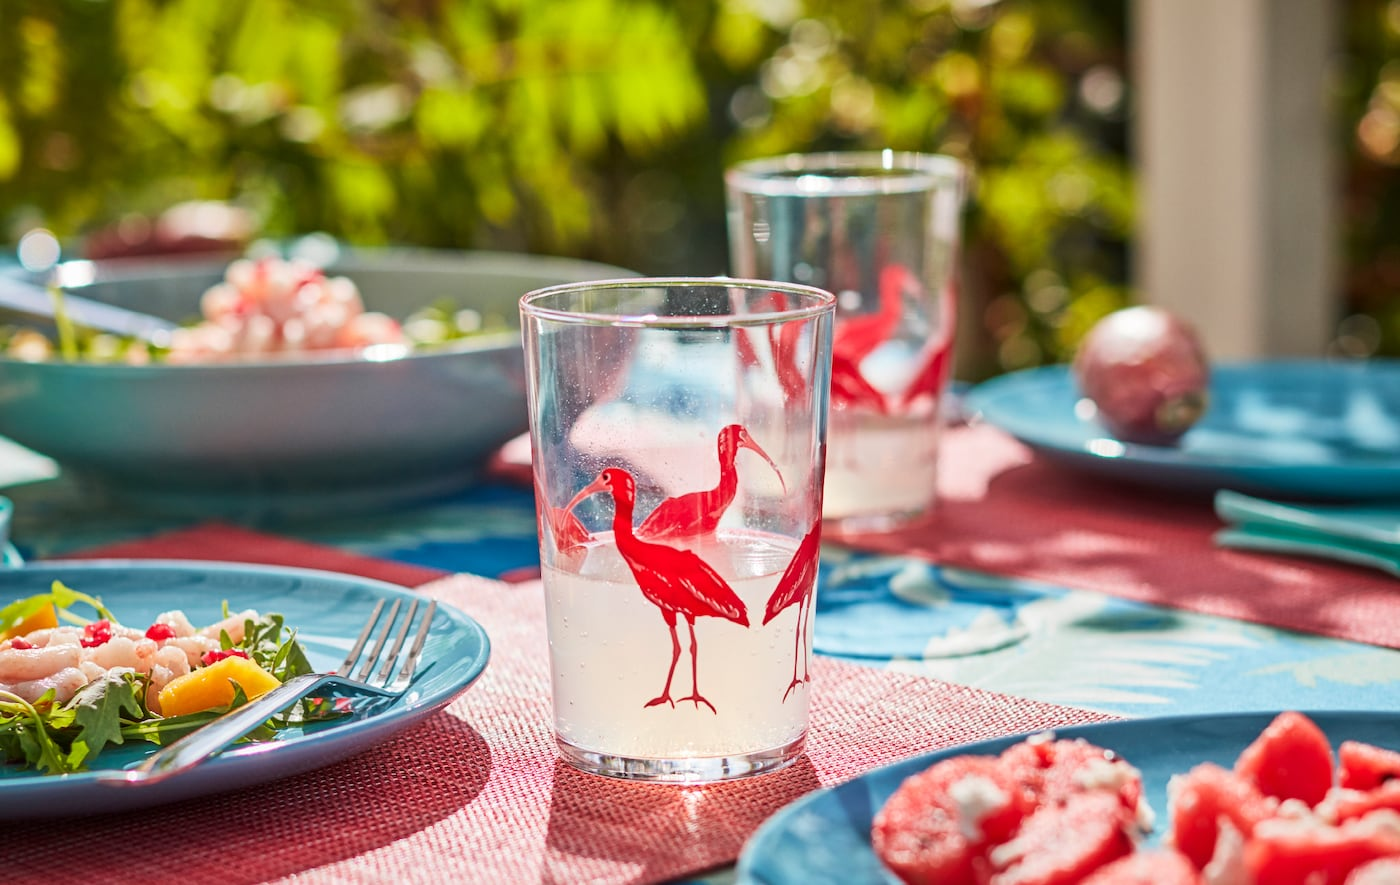 Sunlit table set outdoors with table- and glassware in bold, summery colours and patterns. Light dishes on the plates.